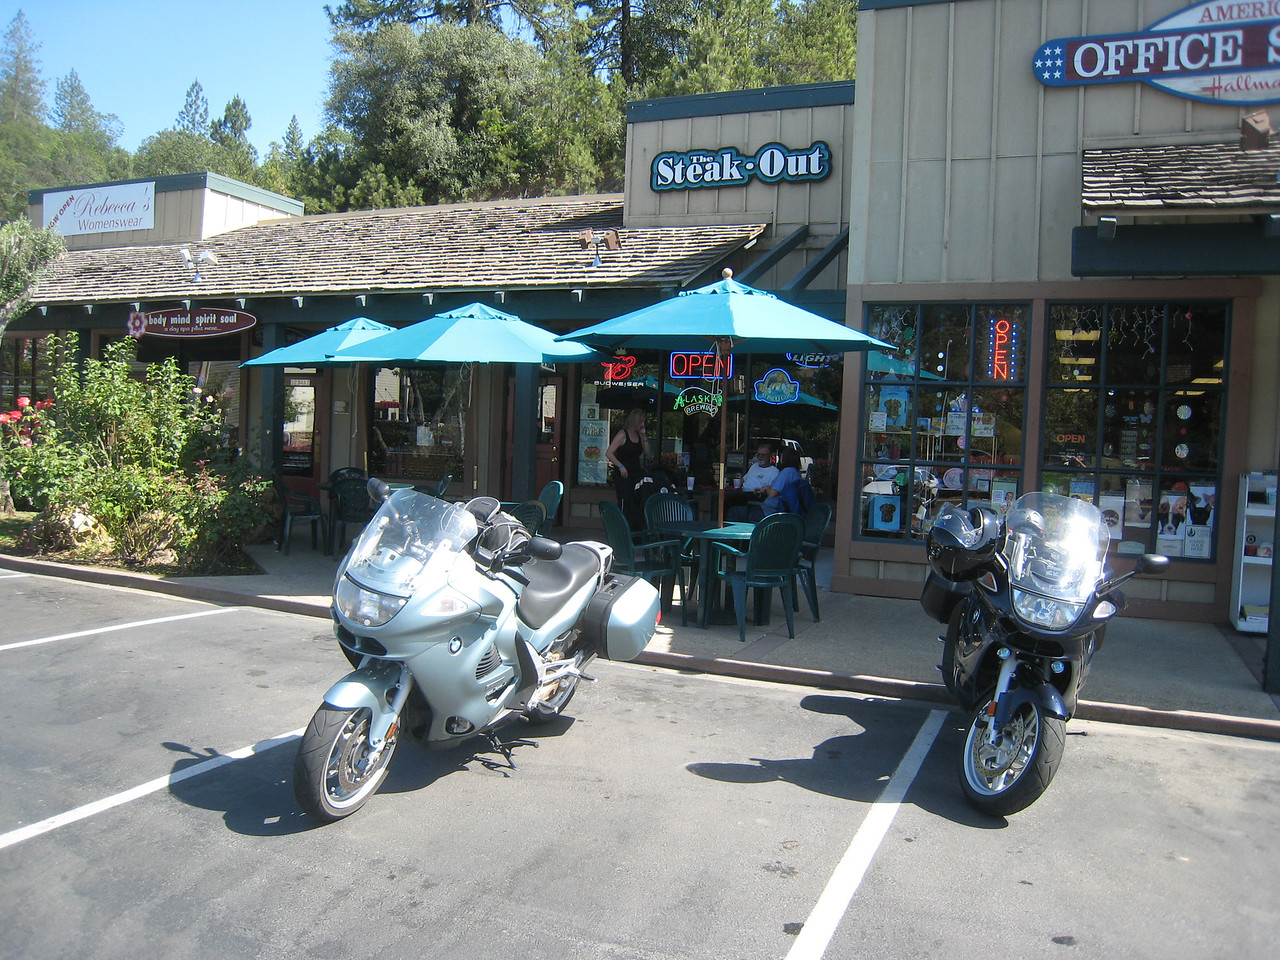 We then head to Placerville for lunch at the Steak-Out, a Greek / Middle Eastern restaurant.